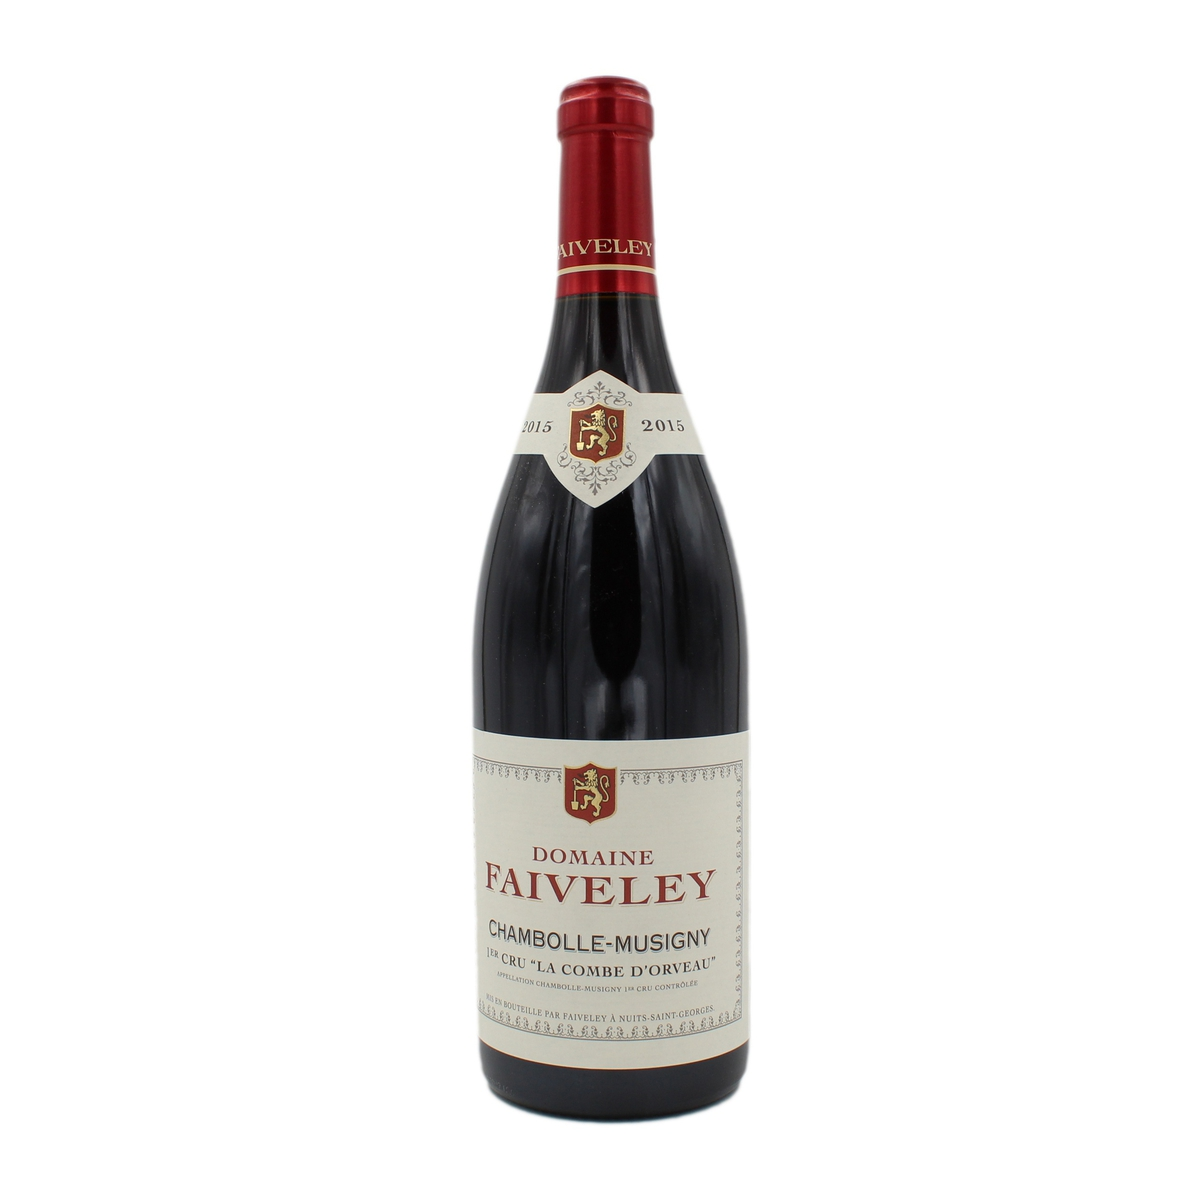 "Chambolle-Musigny 1er Cru ""La Combe d'Orveau"" 2015 Domaine Faiveley"